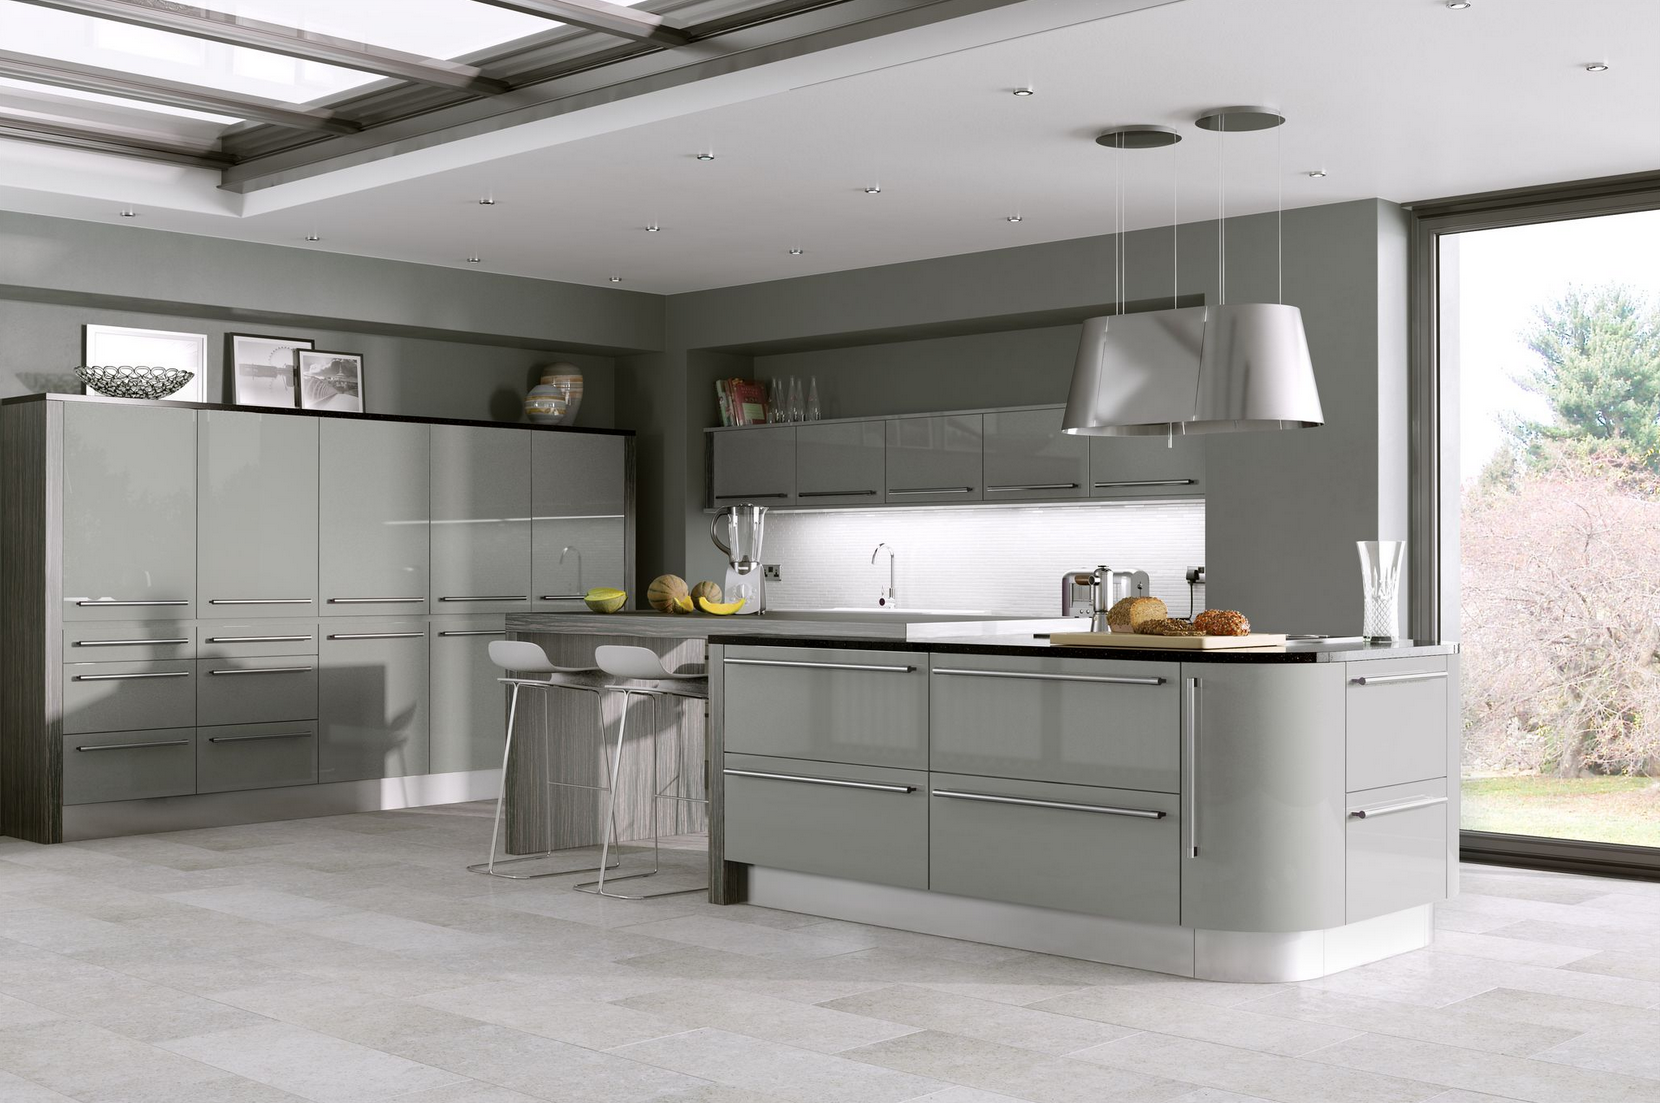 Odyssey stone grey gloss kitchen proline cabinets ltd for Kitchen units